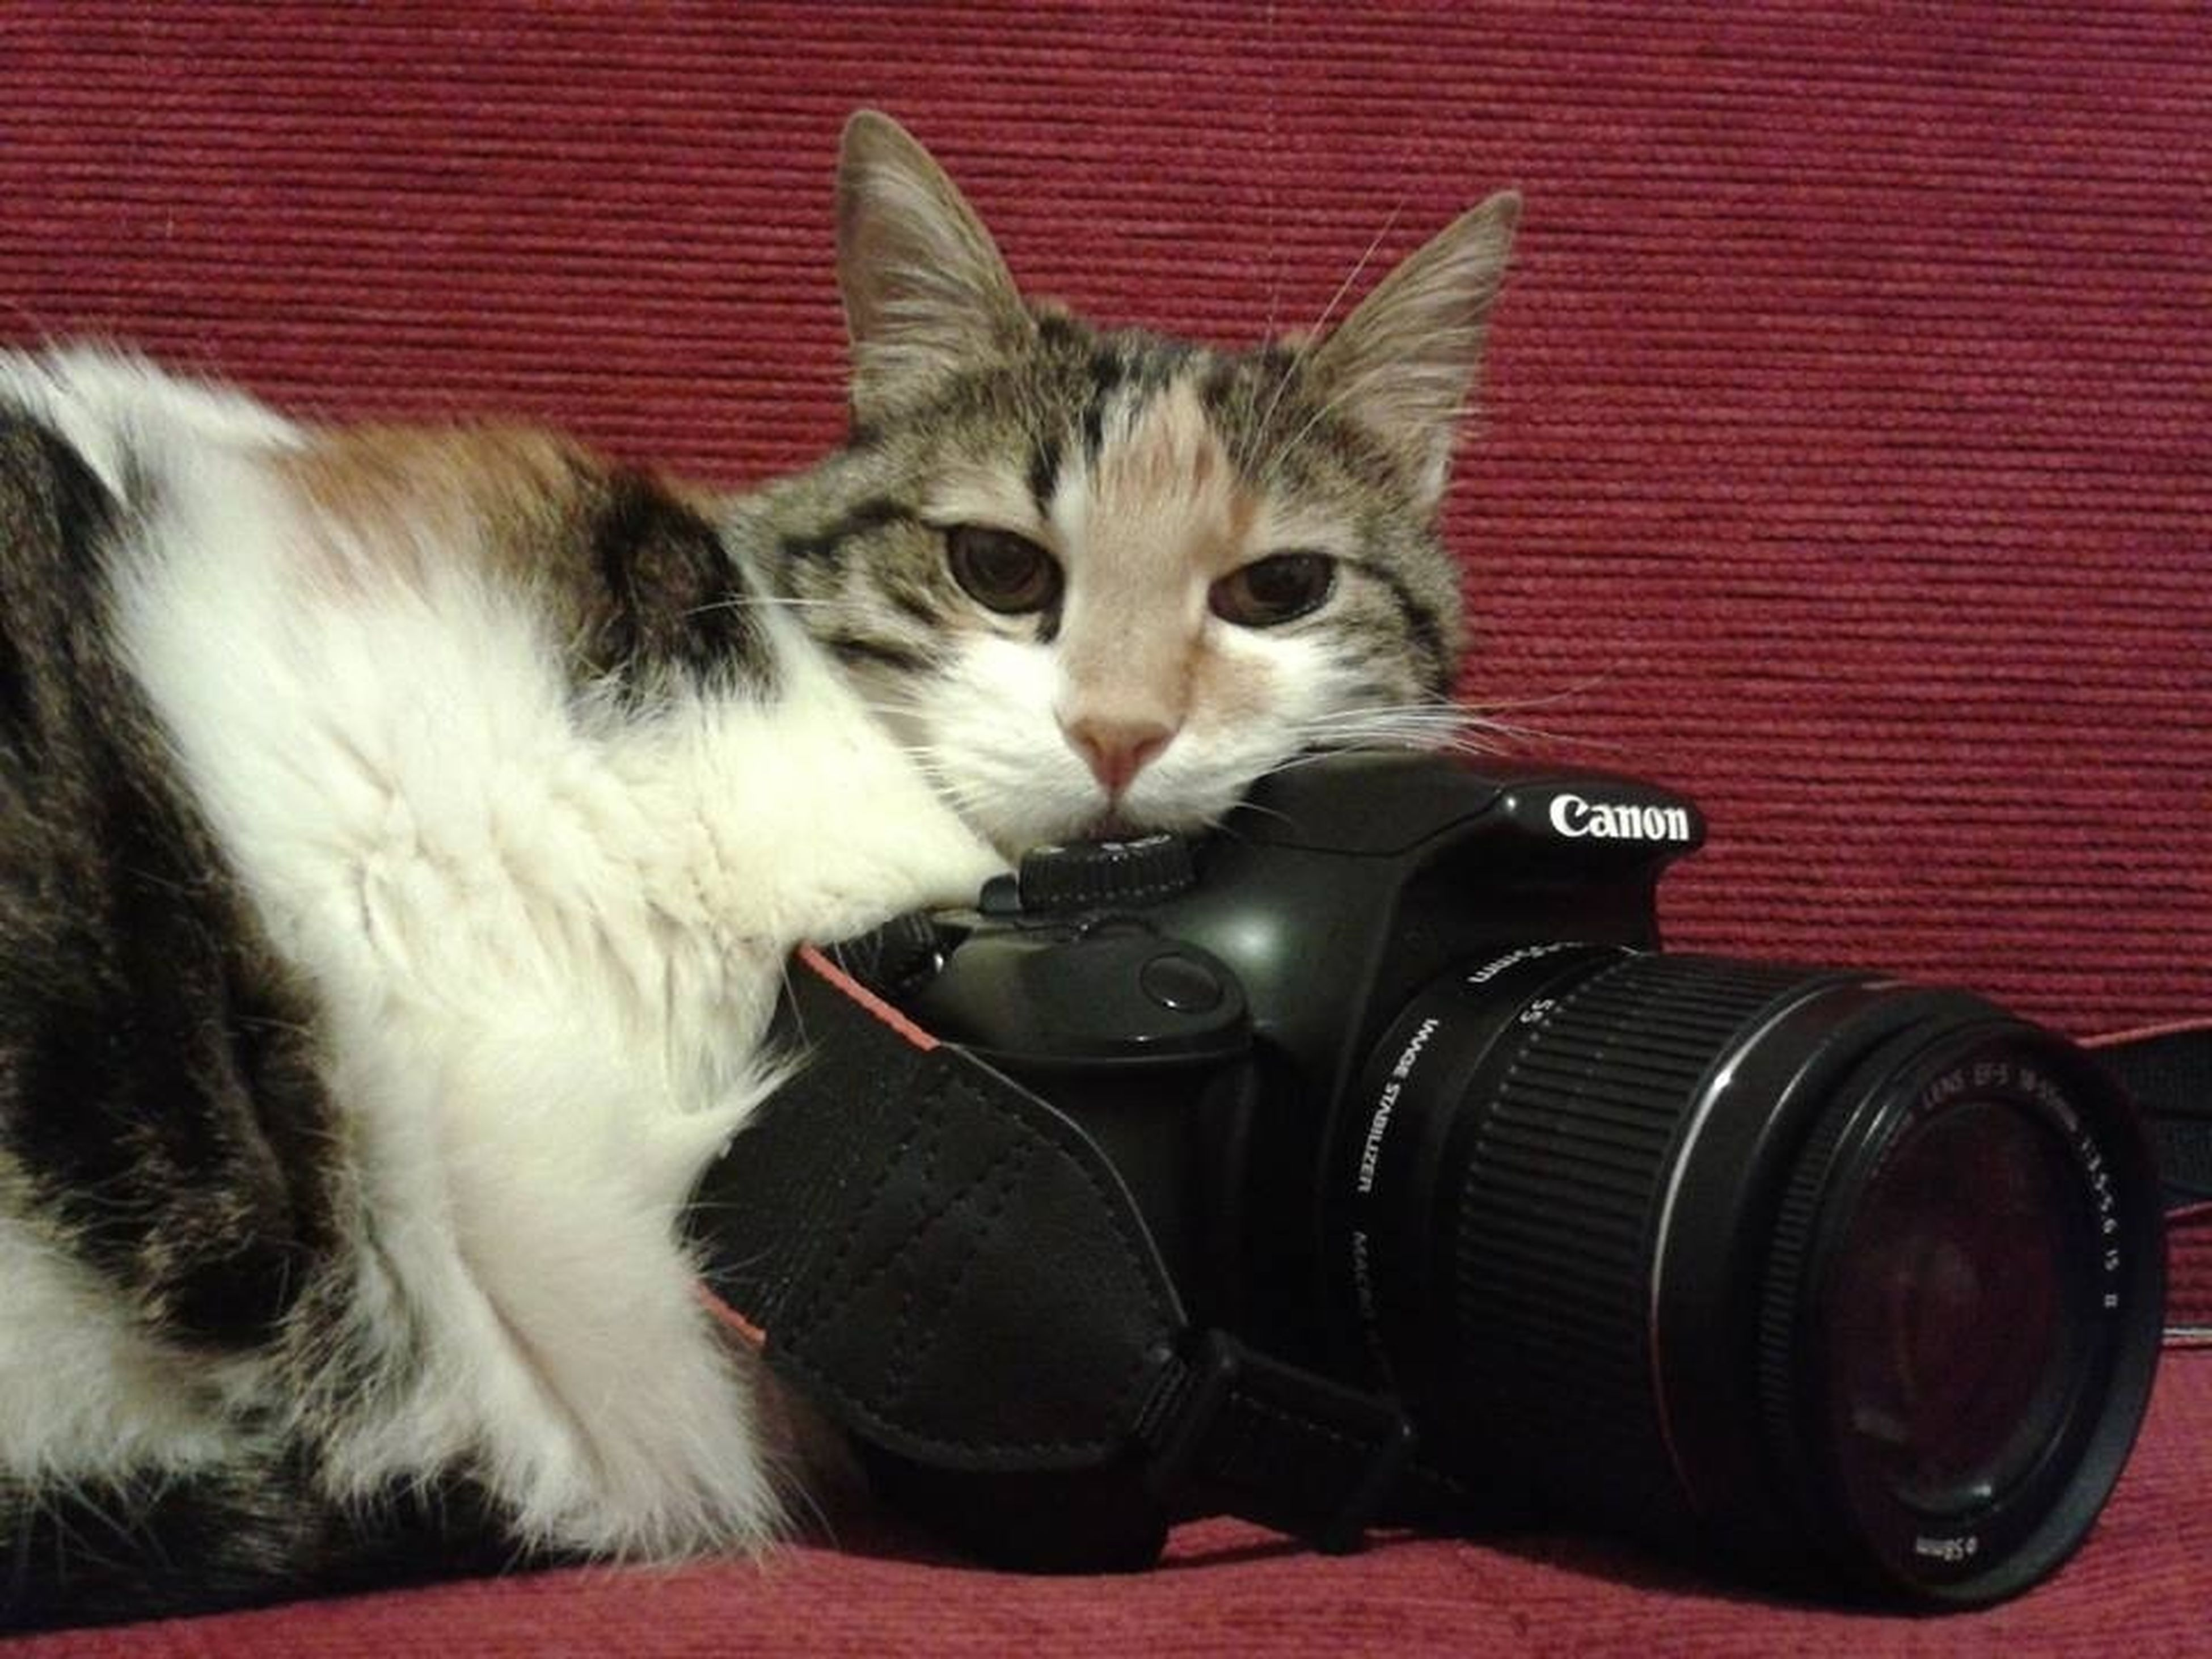 domestic animals, pets, domestic cat, cat, one animal, mammal, animal themes, feline, looking at camera, portrait, whisker, indoors, red, sitting, close-up, front view, relaxation, animal eye, one person, staring